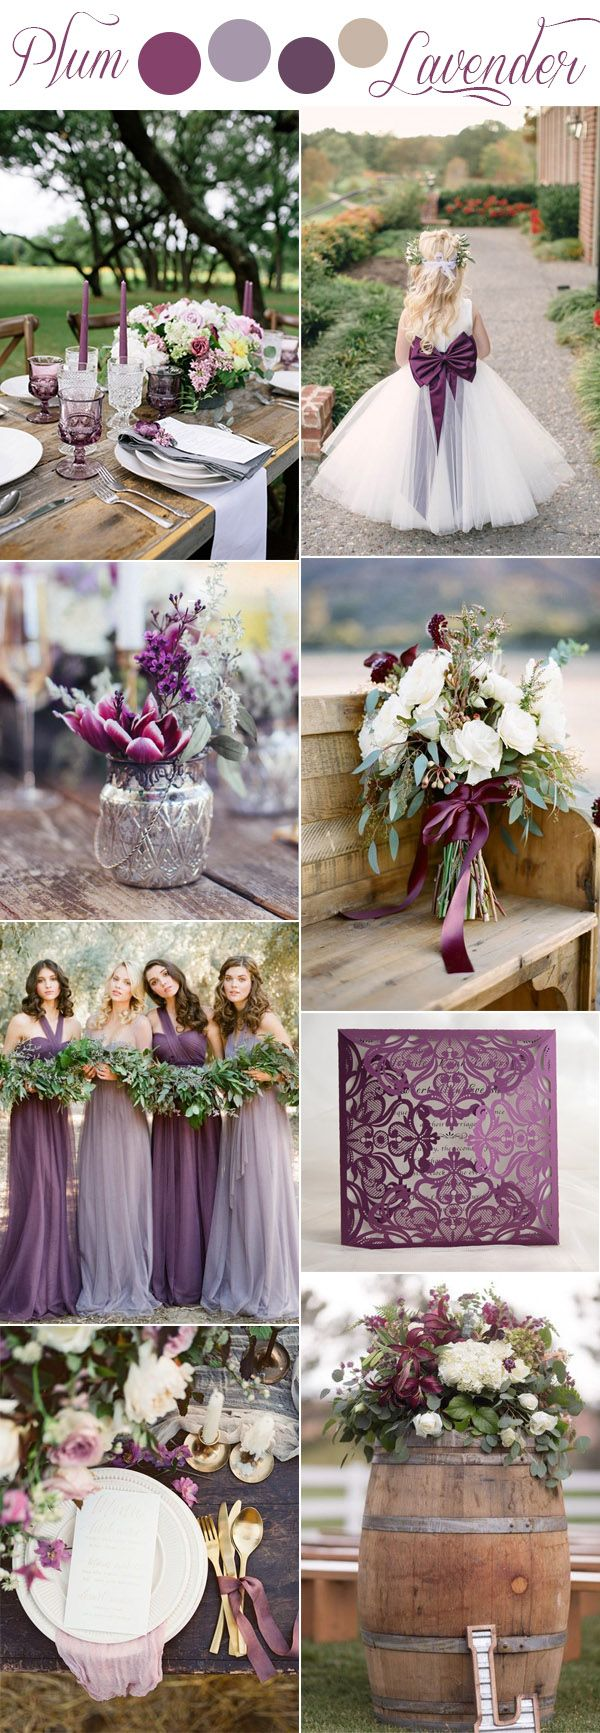 5 Gorgeous Rustic Romantic And Elegant Wedding Ideas Color Palettes